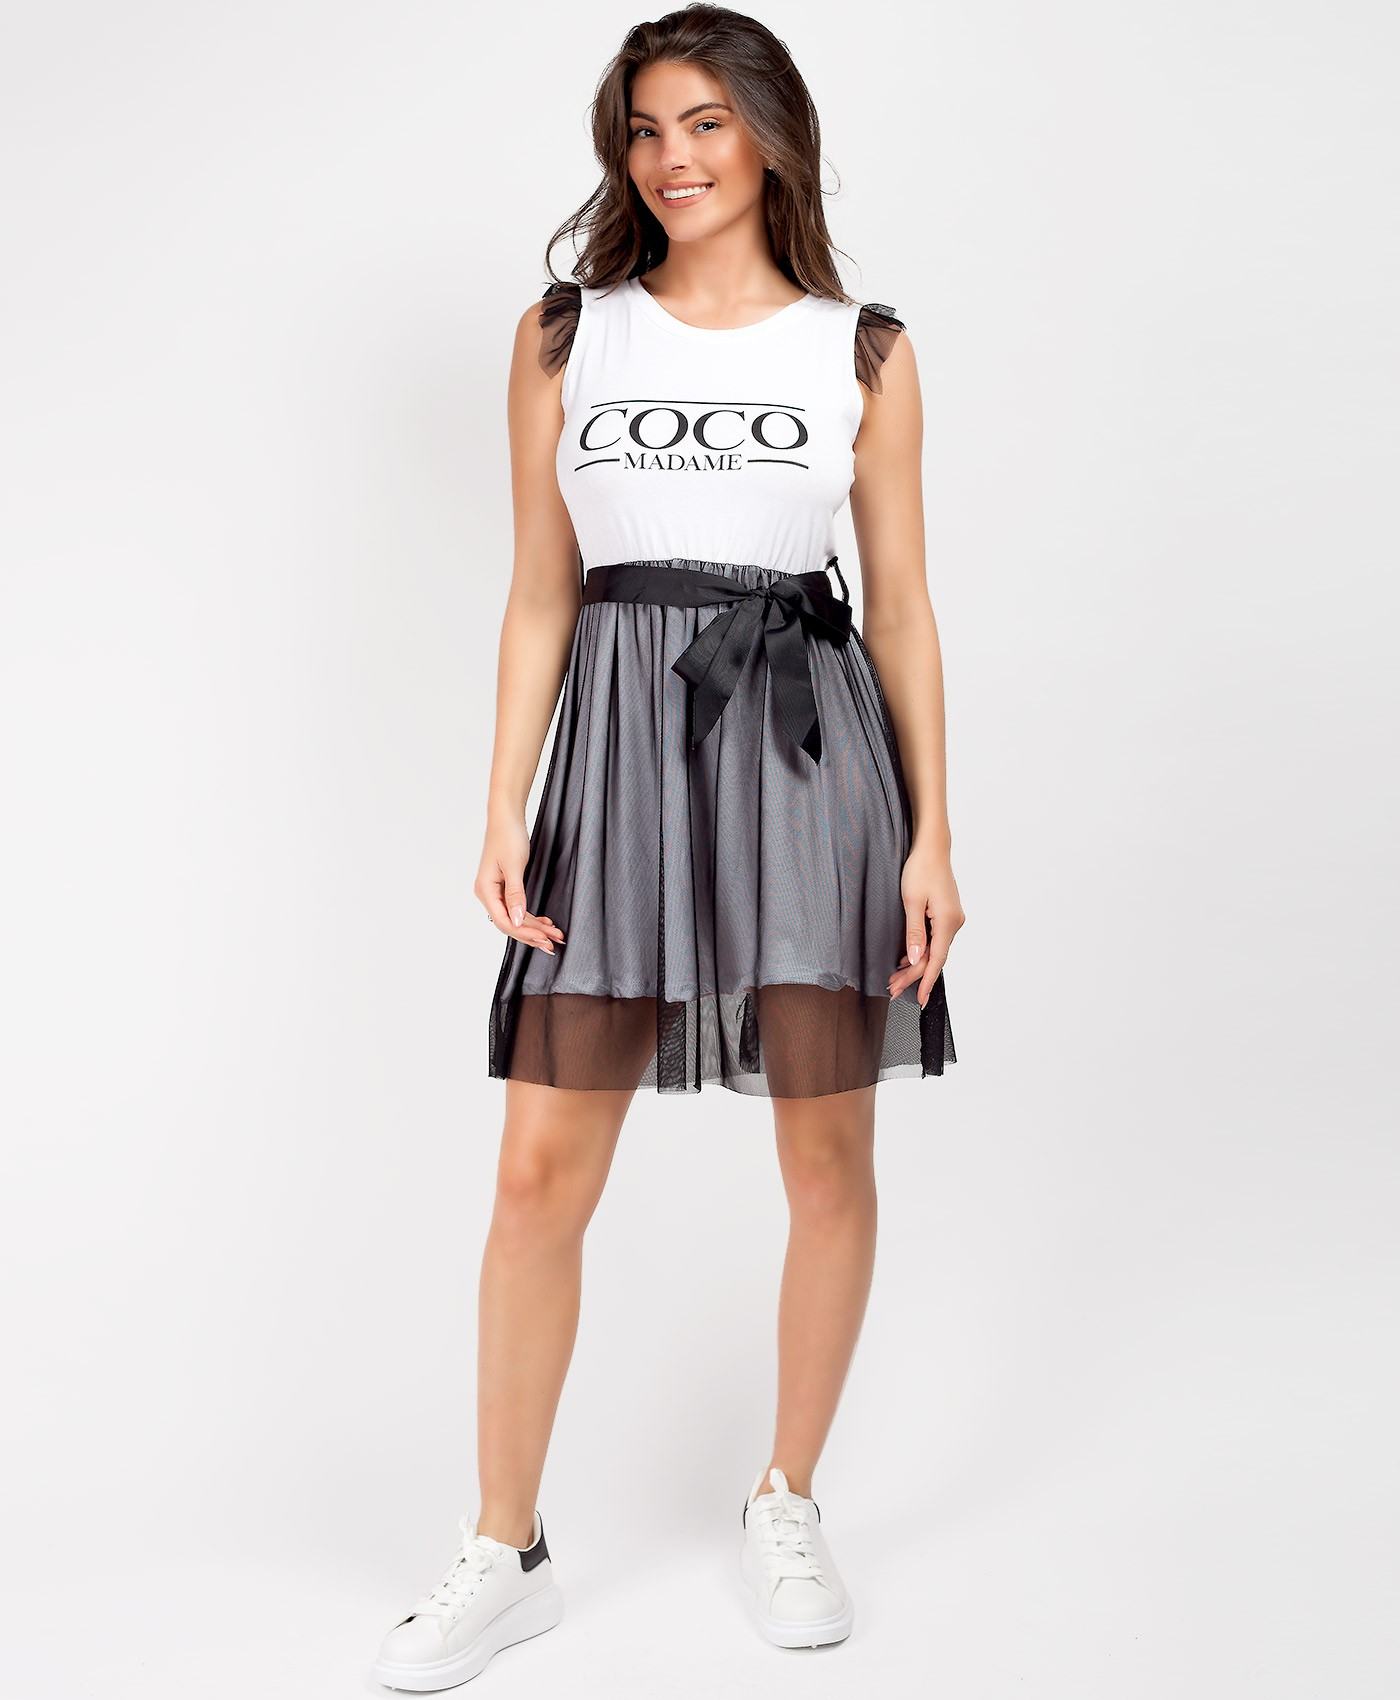 Black-Coco-Madame-Tulle-Skirt-T-Shirt-Dress-1